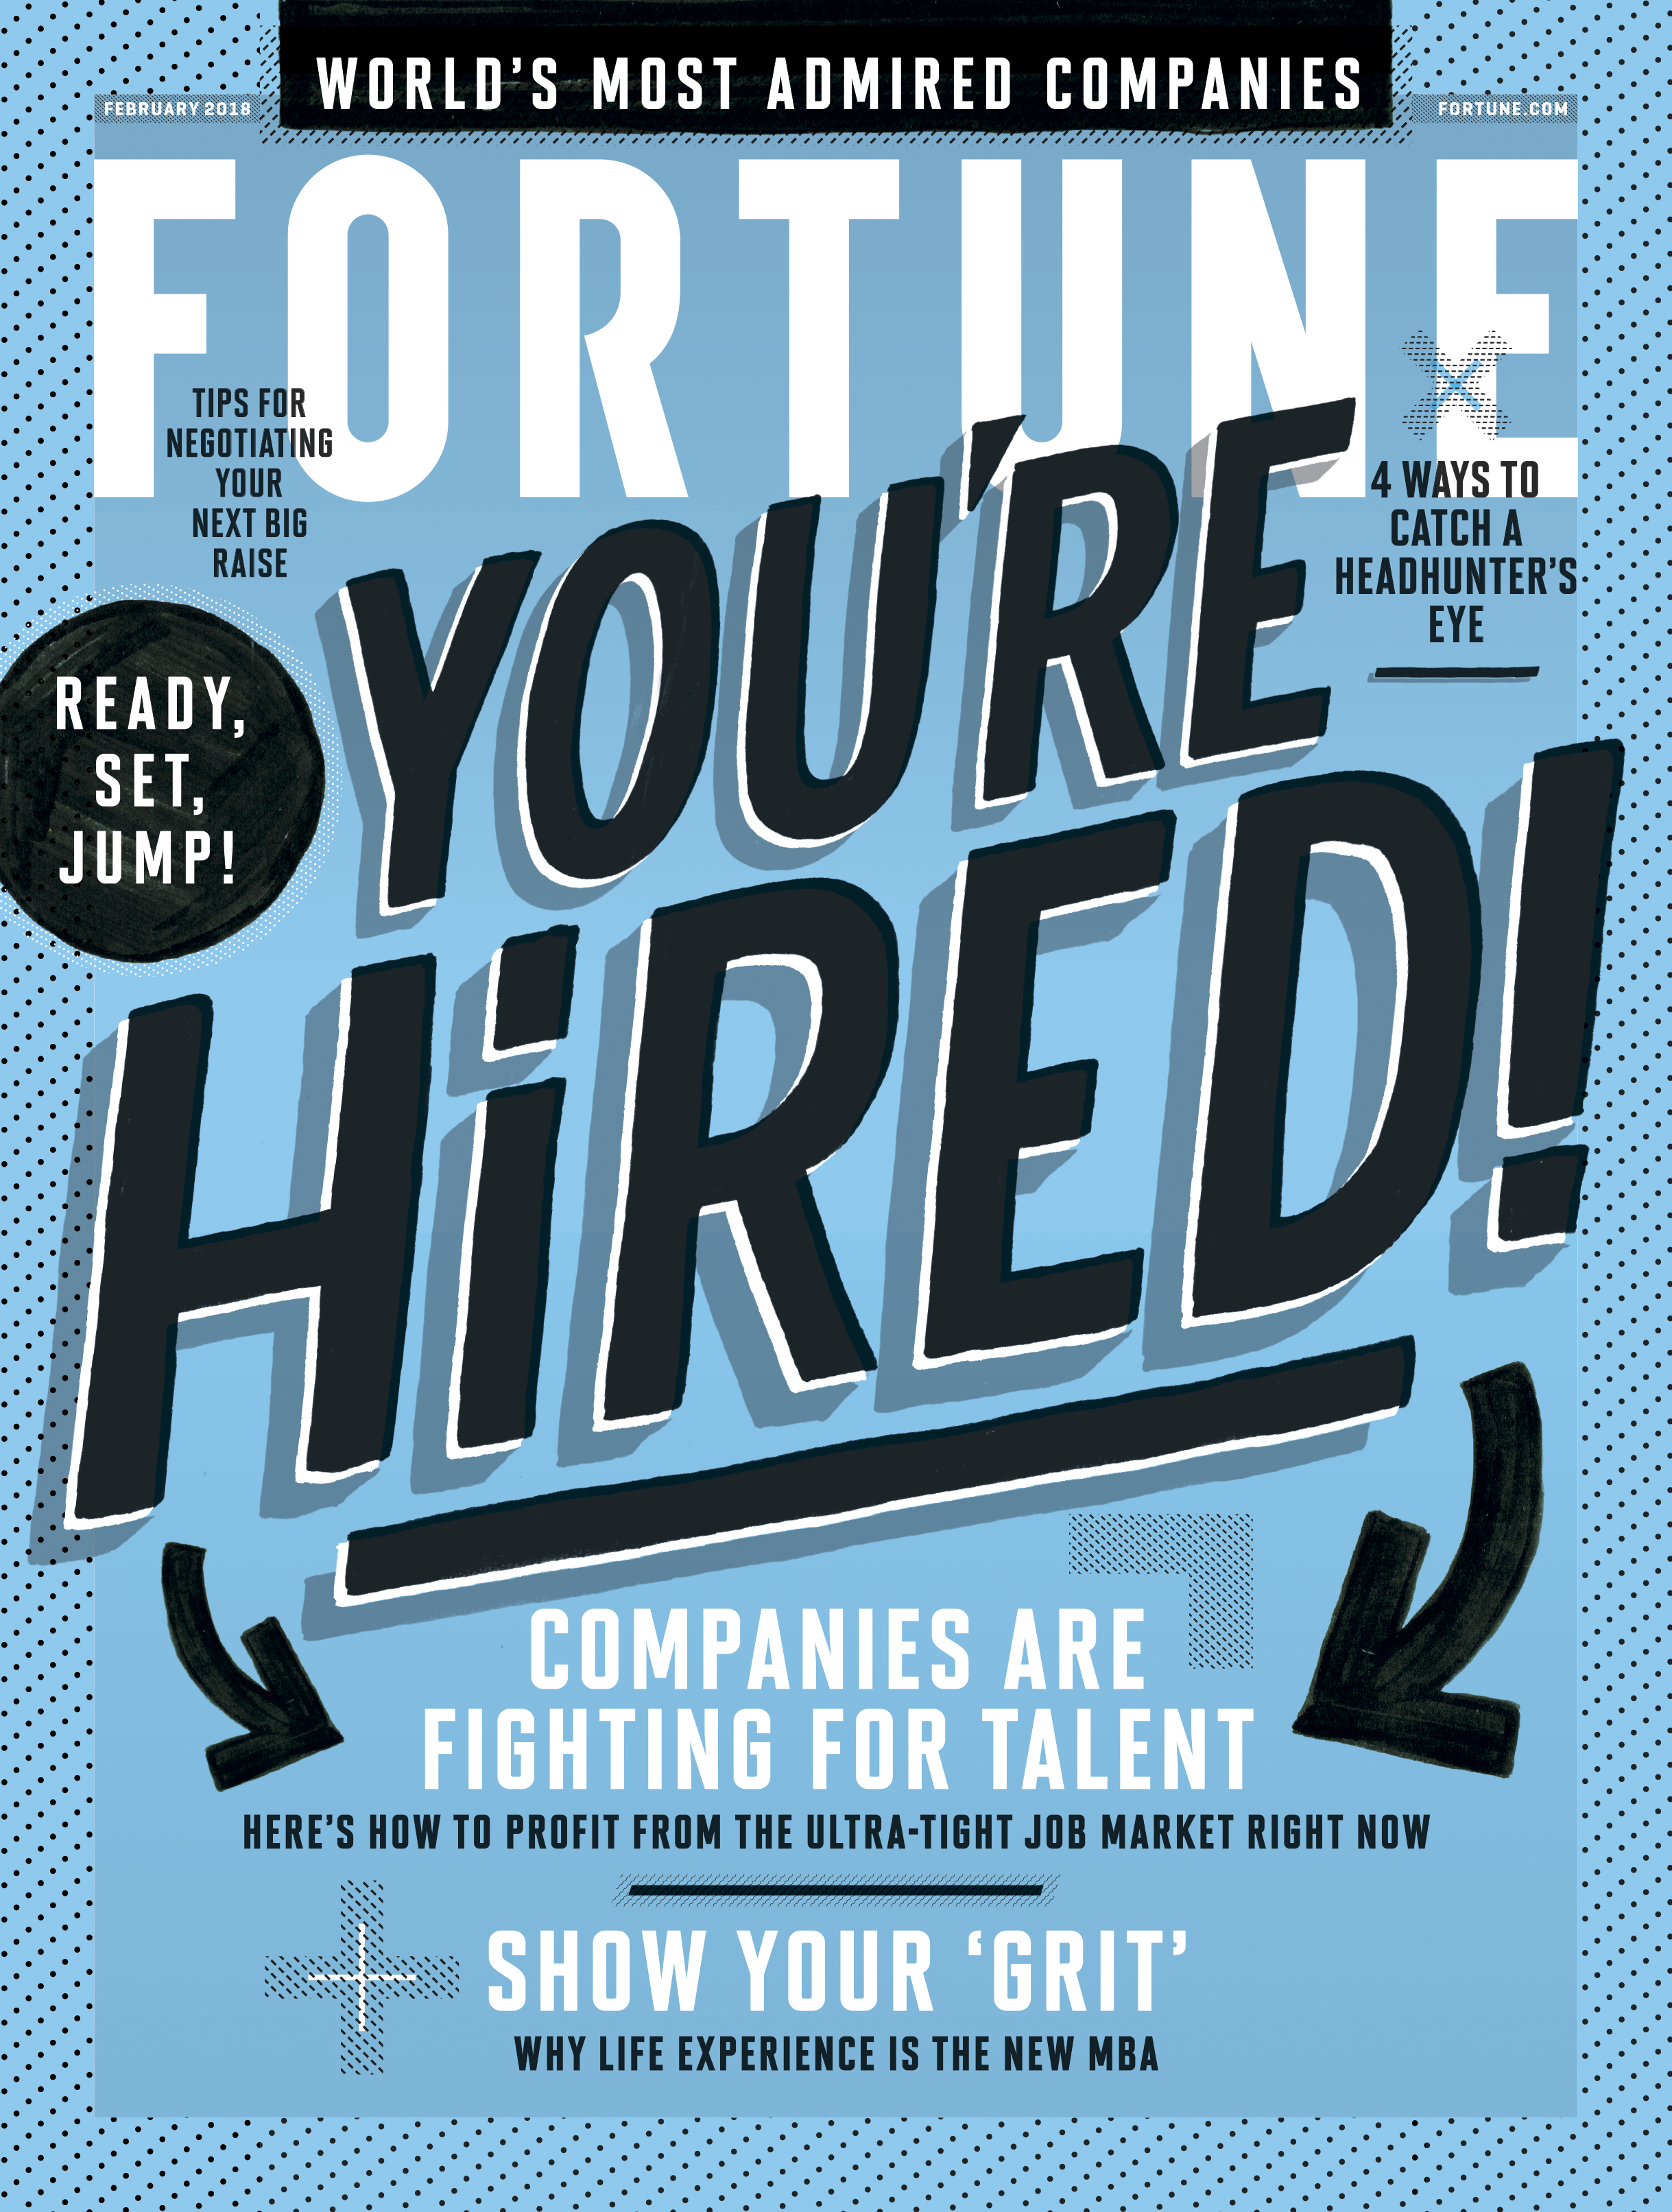 How to Profit From the Ultra-Tight Job Market | Fortune